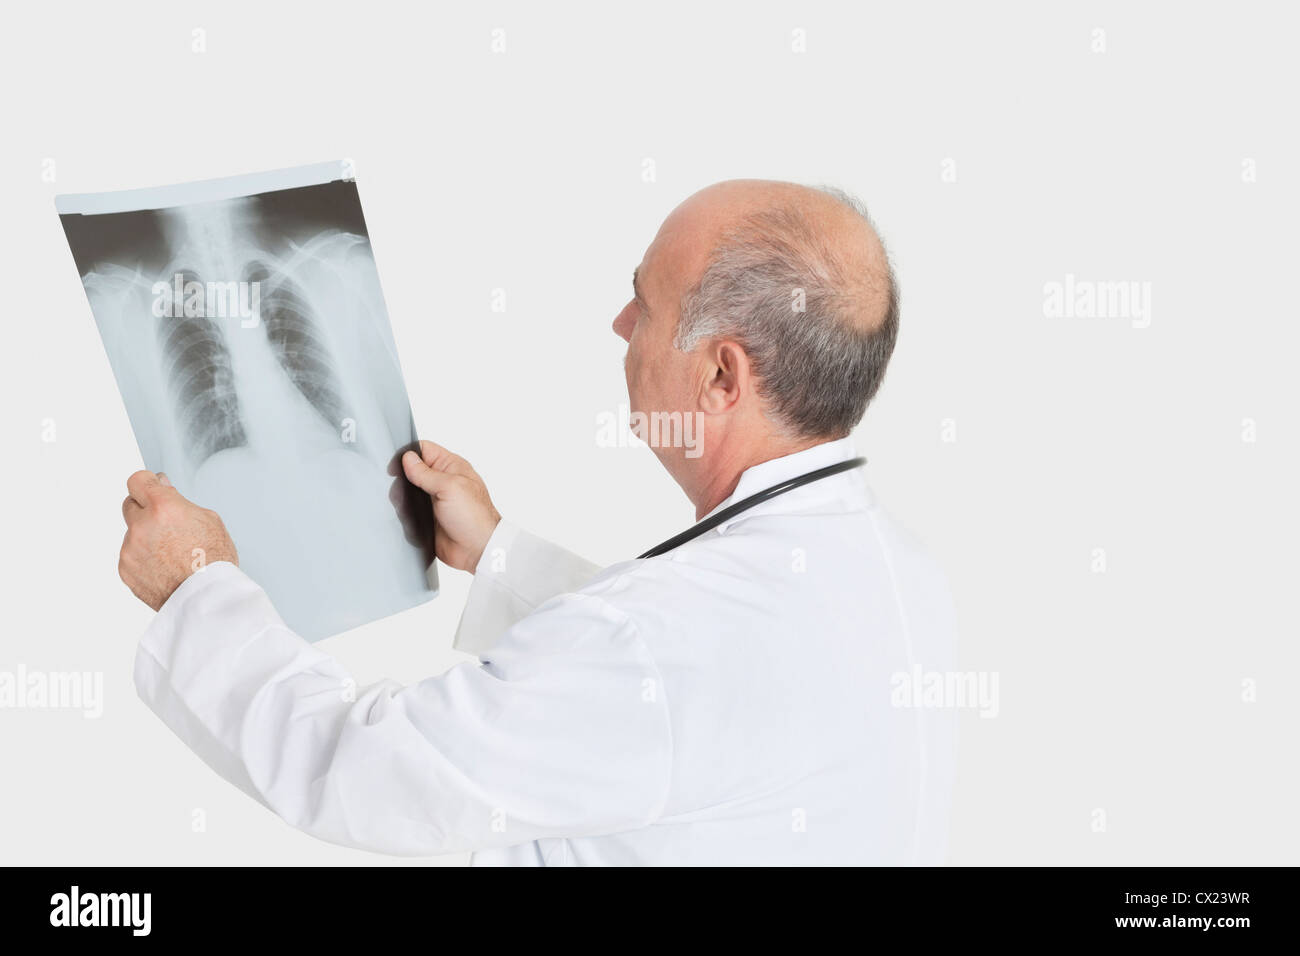 Senior male doctor examining medical radiograph over gray background - Stock Image